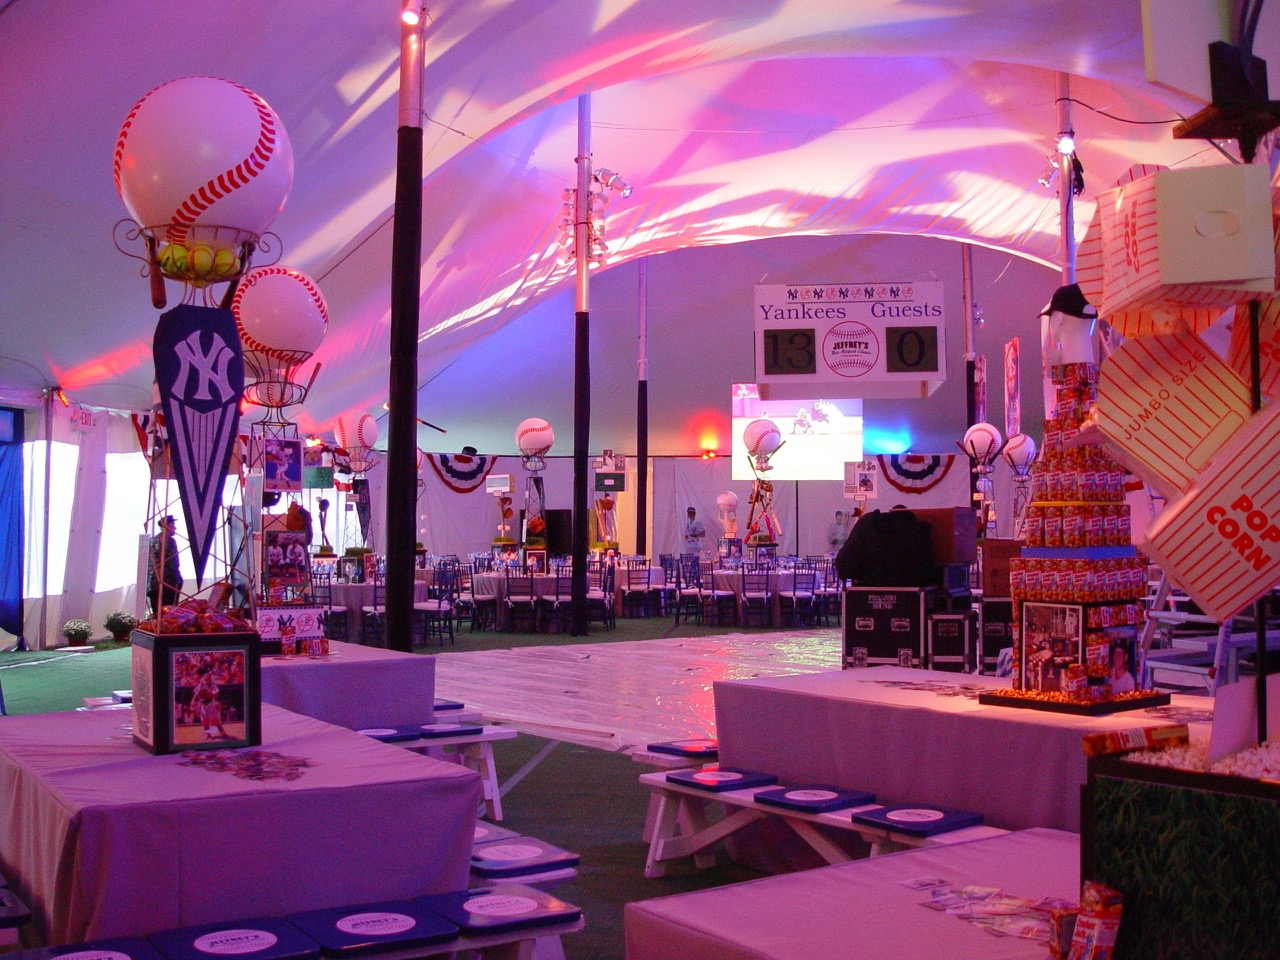 Sports+Theme+Centerpieces+Decor+and+Lighting+by+Eggsotic+Events+NJ+Event+Design+and+Decor+Rental++-+2.jpg